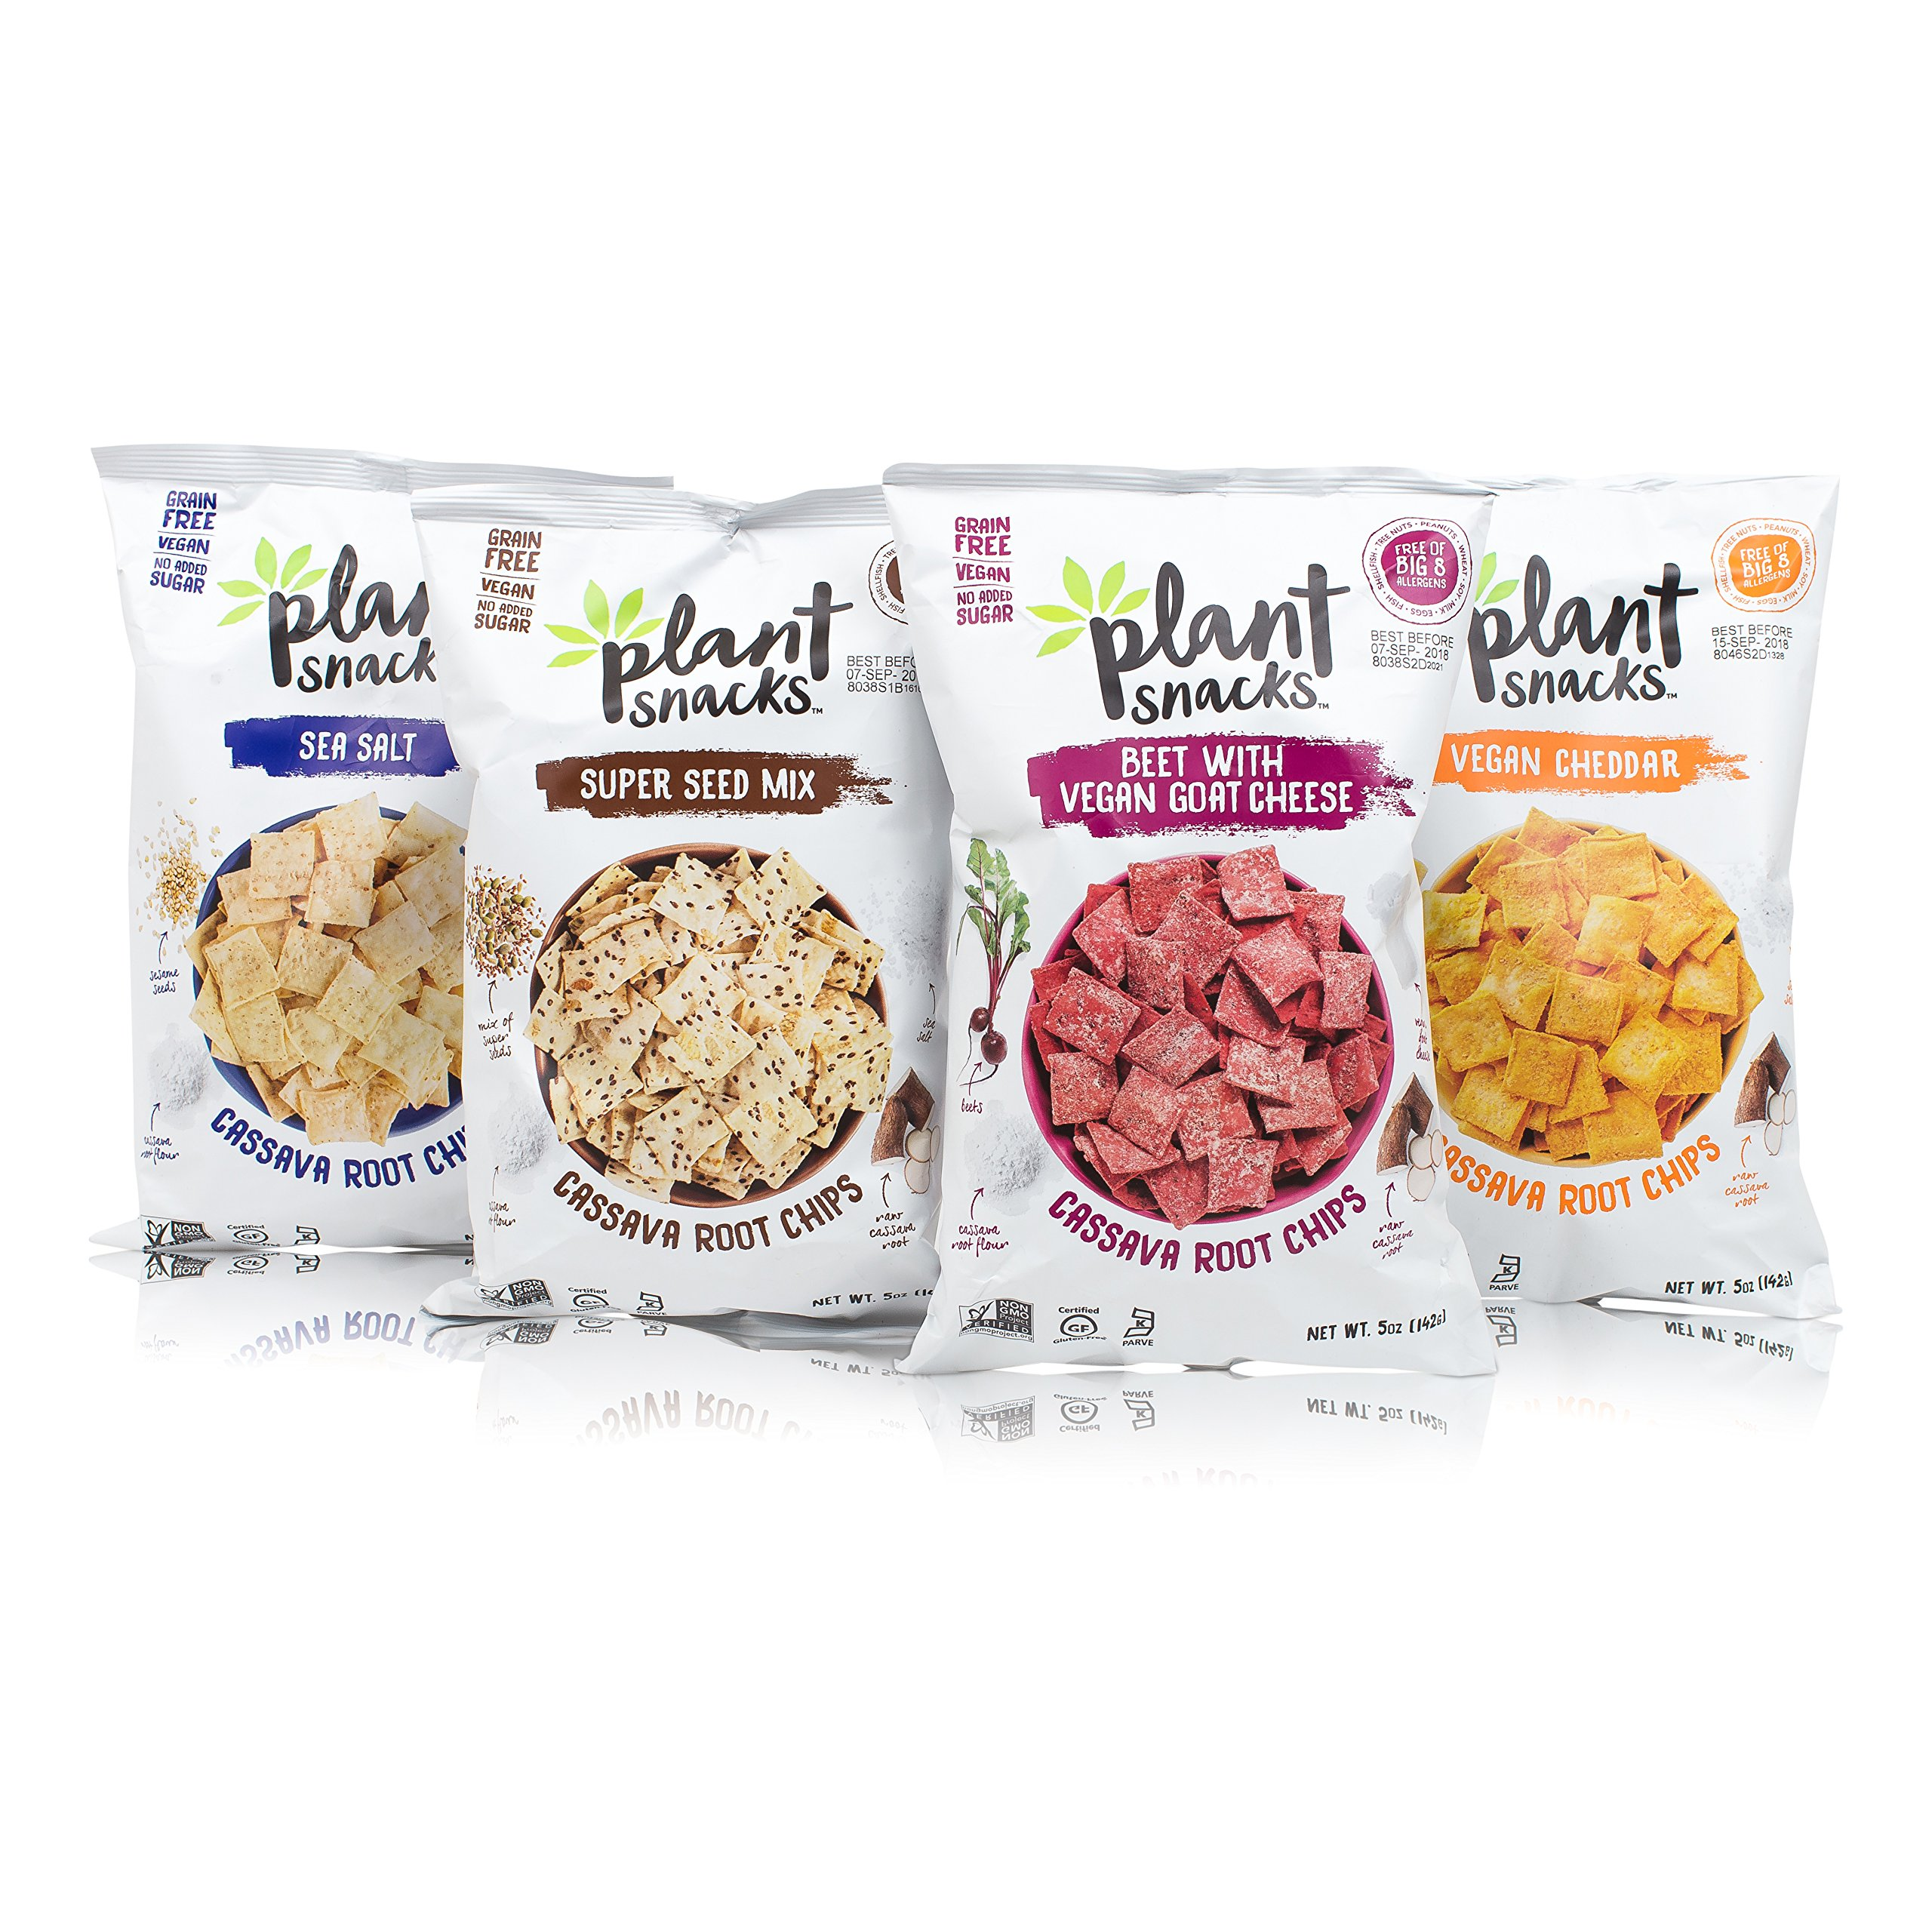 Plant Snacks Variety Pack - Cheddar, Sea Salt, Beet with Goat Cheese, Super Seeds Cassava Root Chips, Vegan, Big-8 Allergen Free, Non-GMO, Gluten and Grain Free, No Added Sugar, 5 oz Bags, Pack of 4 by Plant Snacks